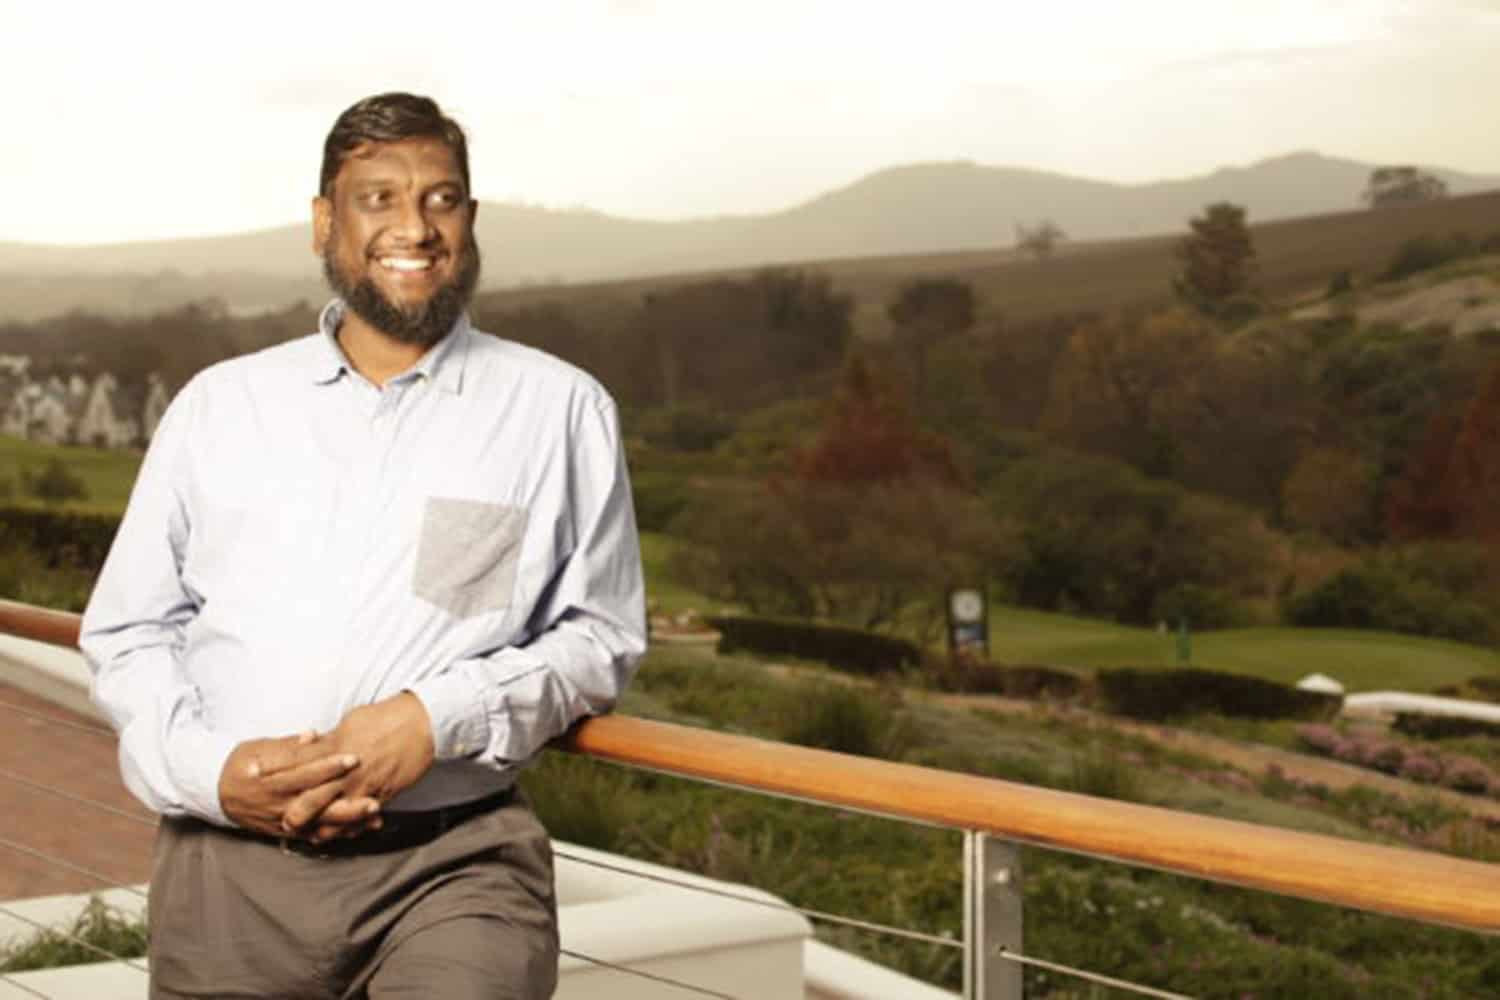 The death of prof. Mohammad Karaan has shaken the agricultural sector to its core. Photo: Supplied/Food For Mzansi